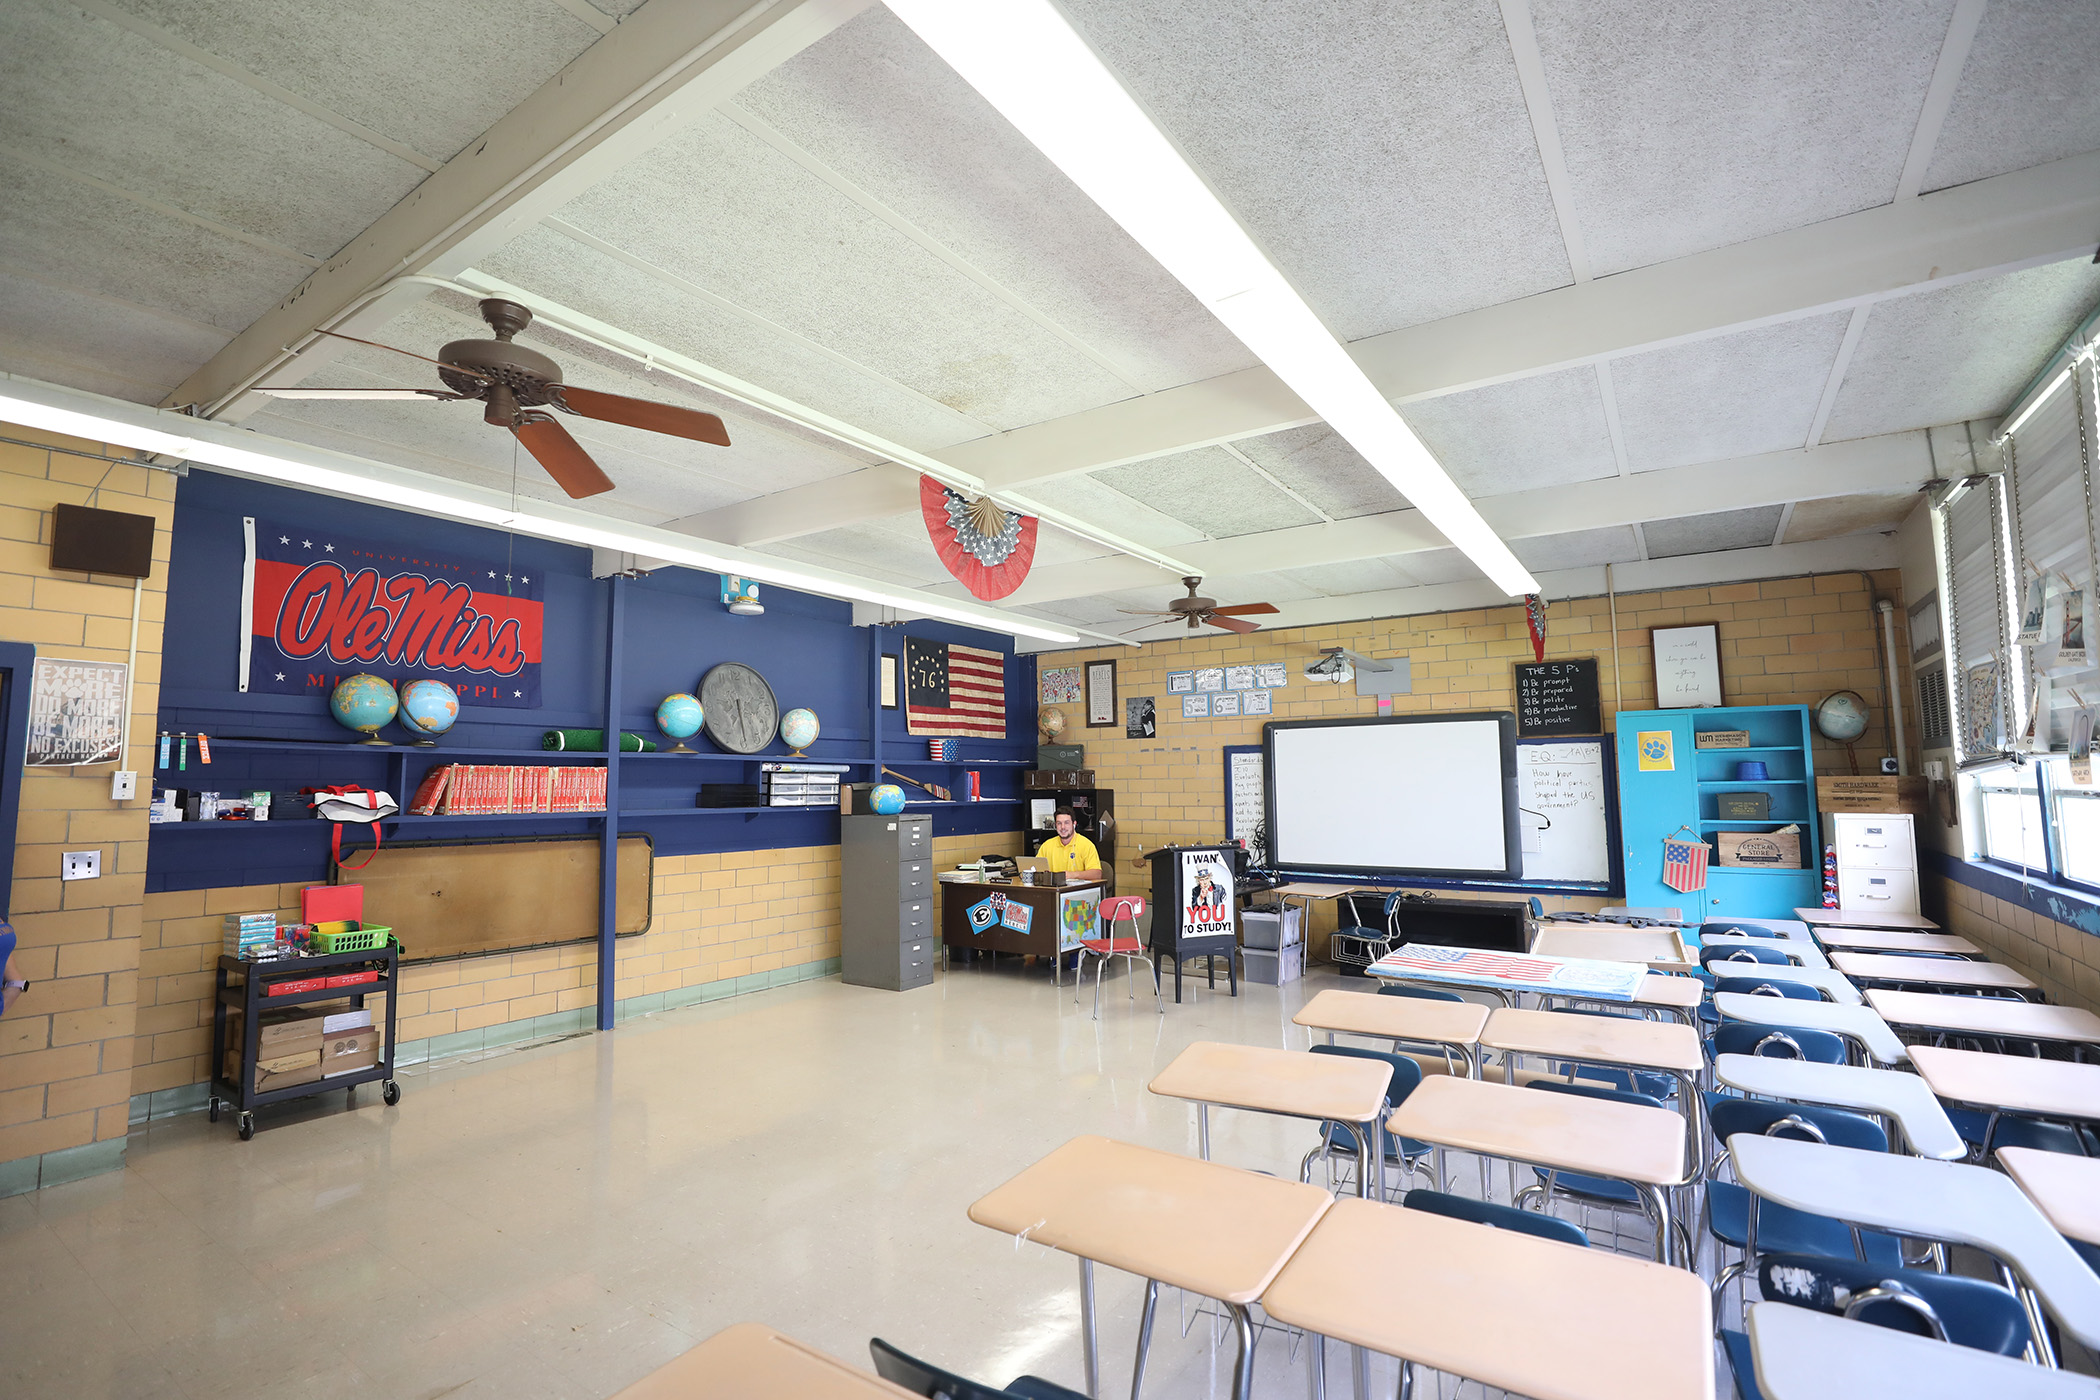 This is a photo of a classroom at QJH.